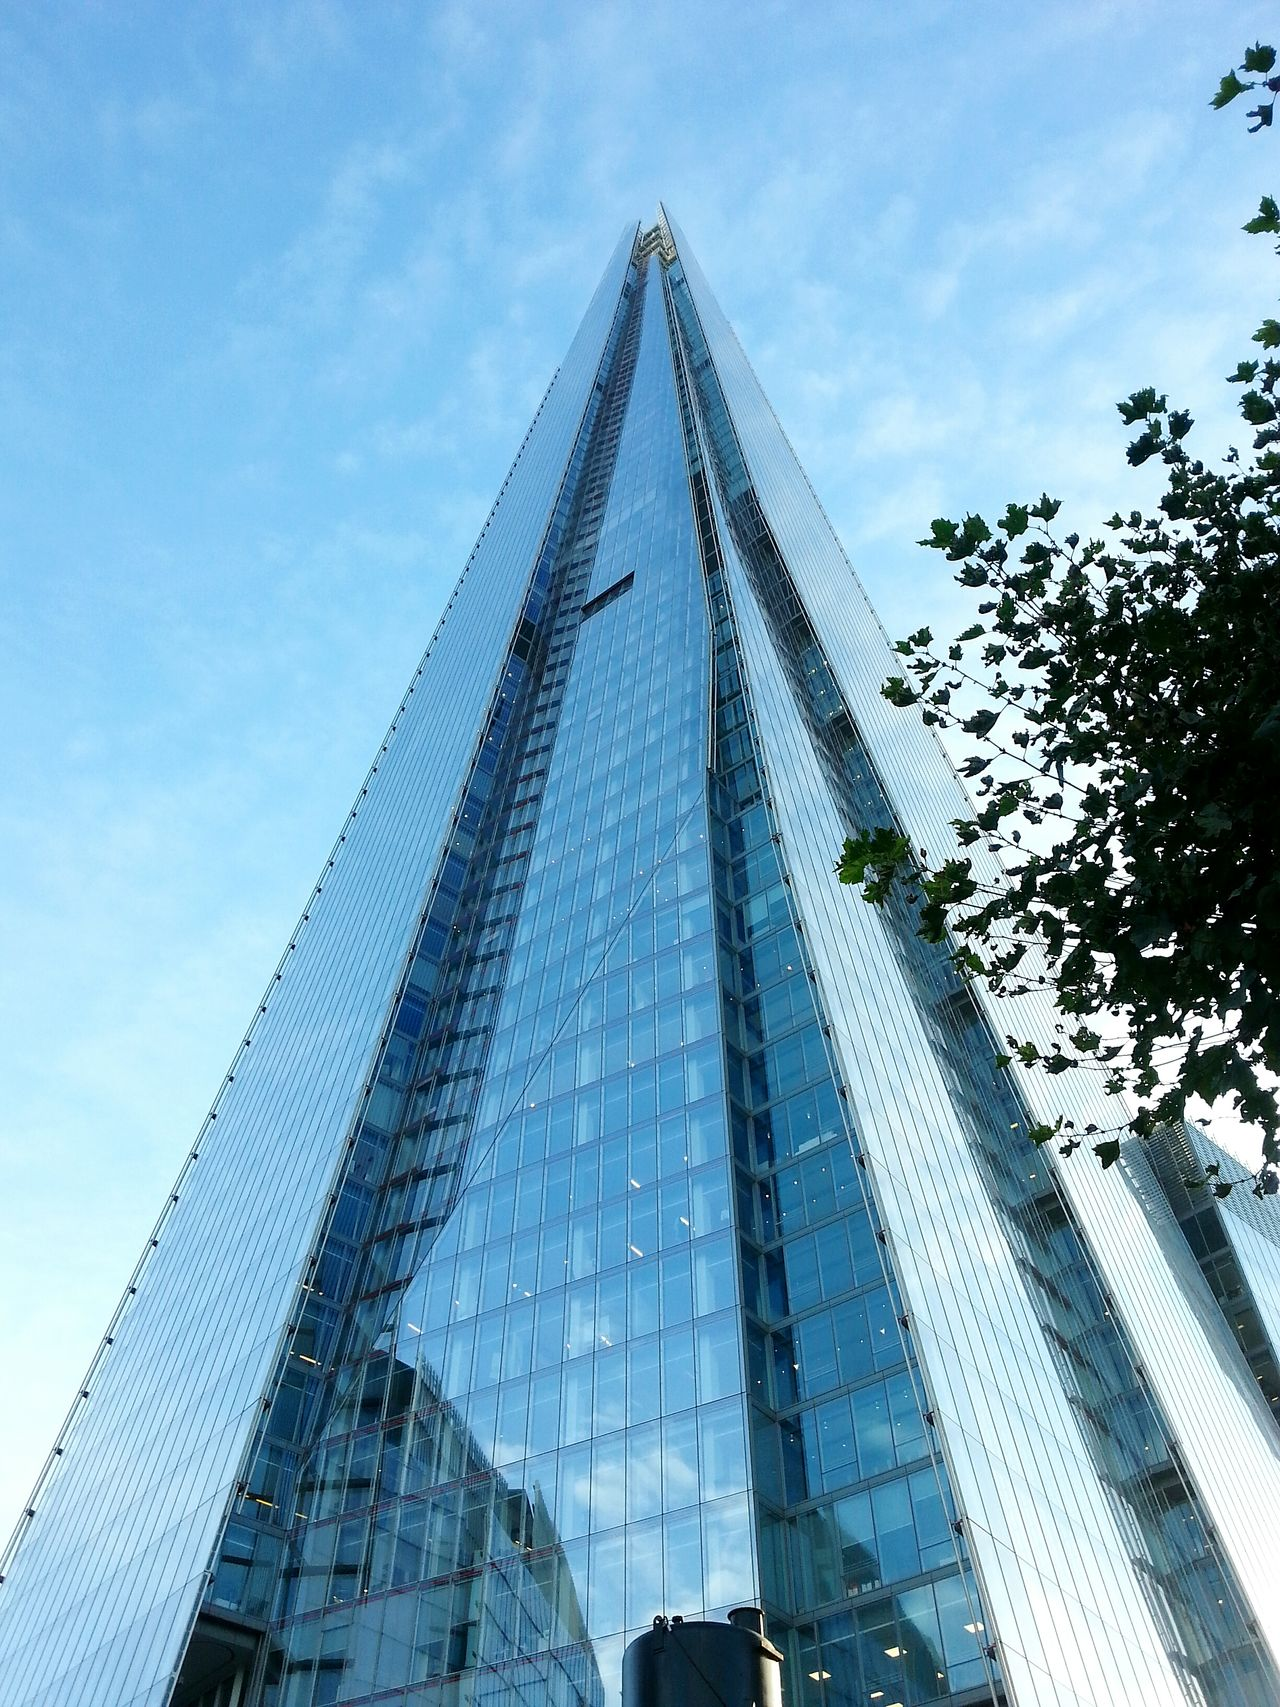 The Shard, London Sky Architecture City Built Structure England, UK Photo Photography Building